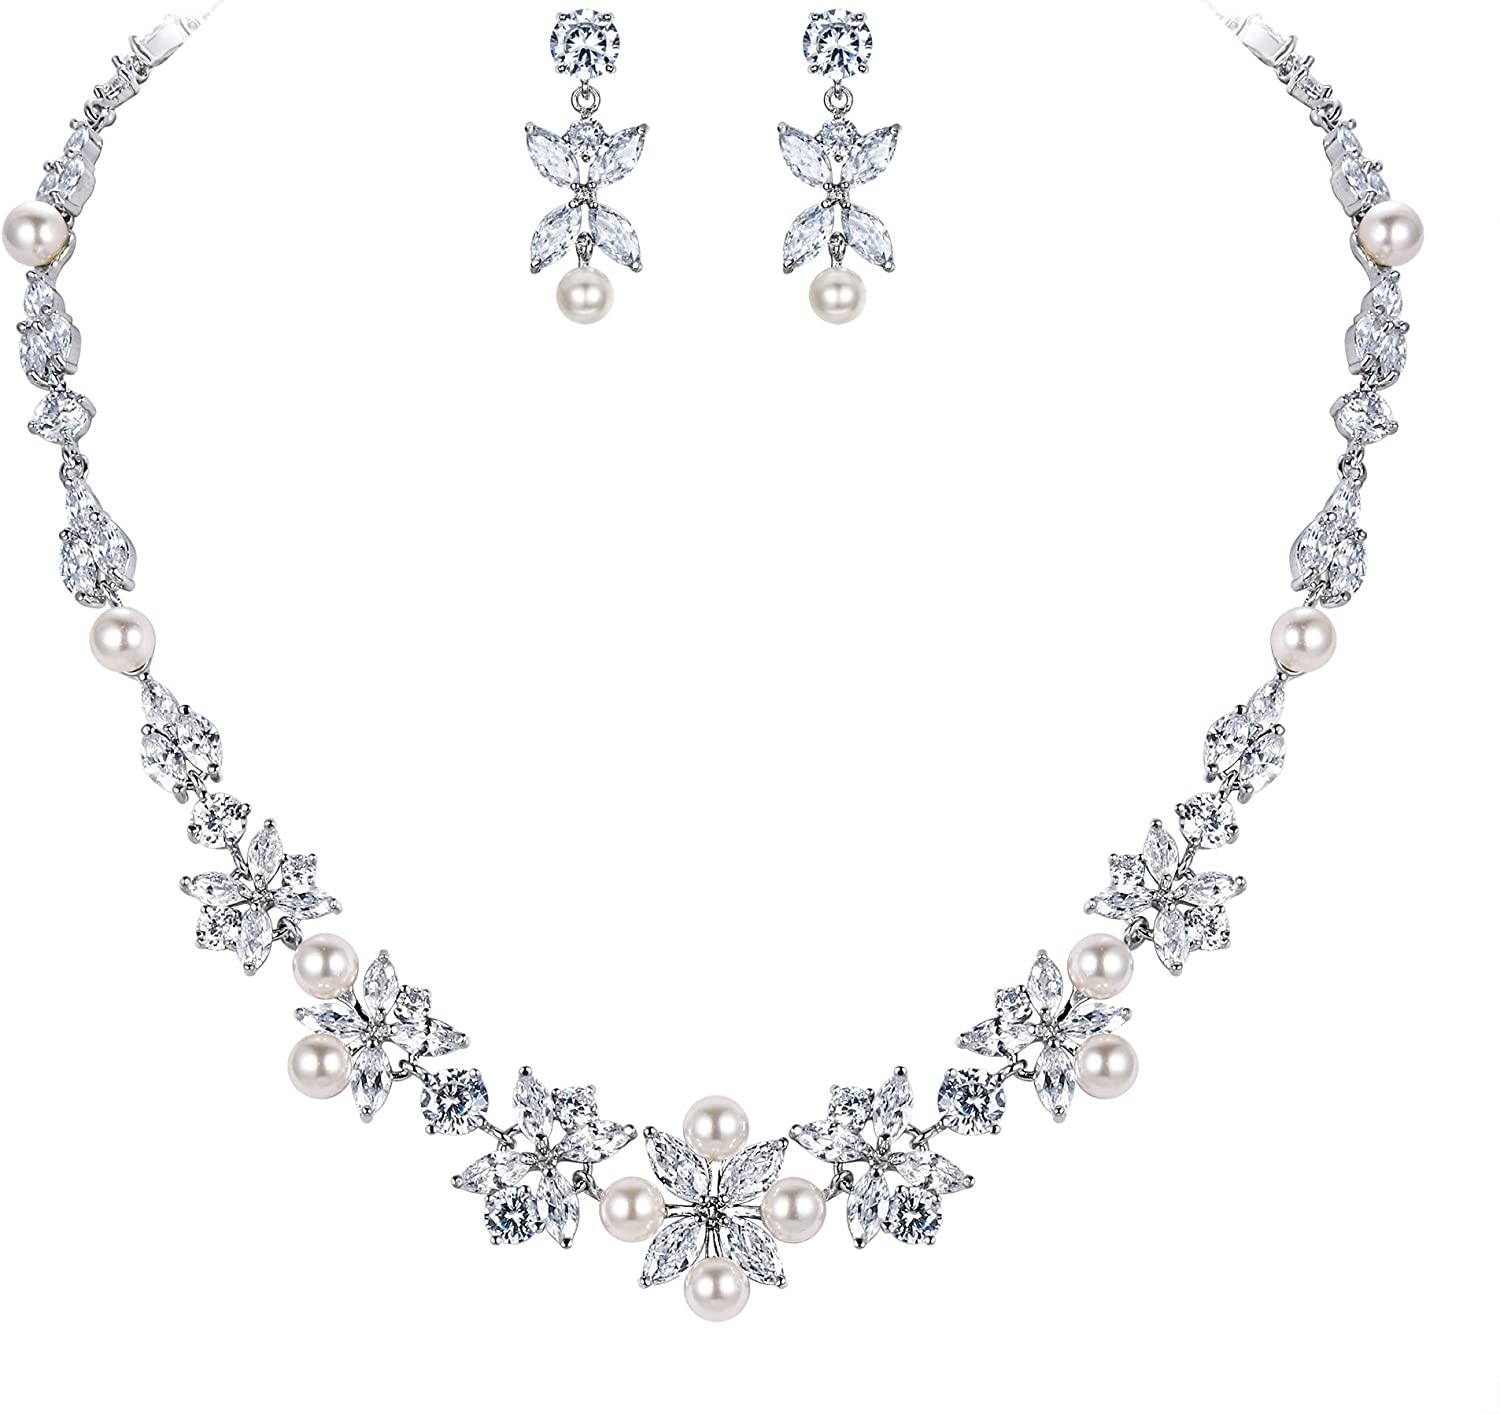 EVER FAITH Wedding Jewelry Gorgeous Bri Simulated Pearl Max 77% OFF White CZ Courier shipping free shipping